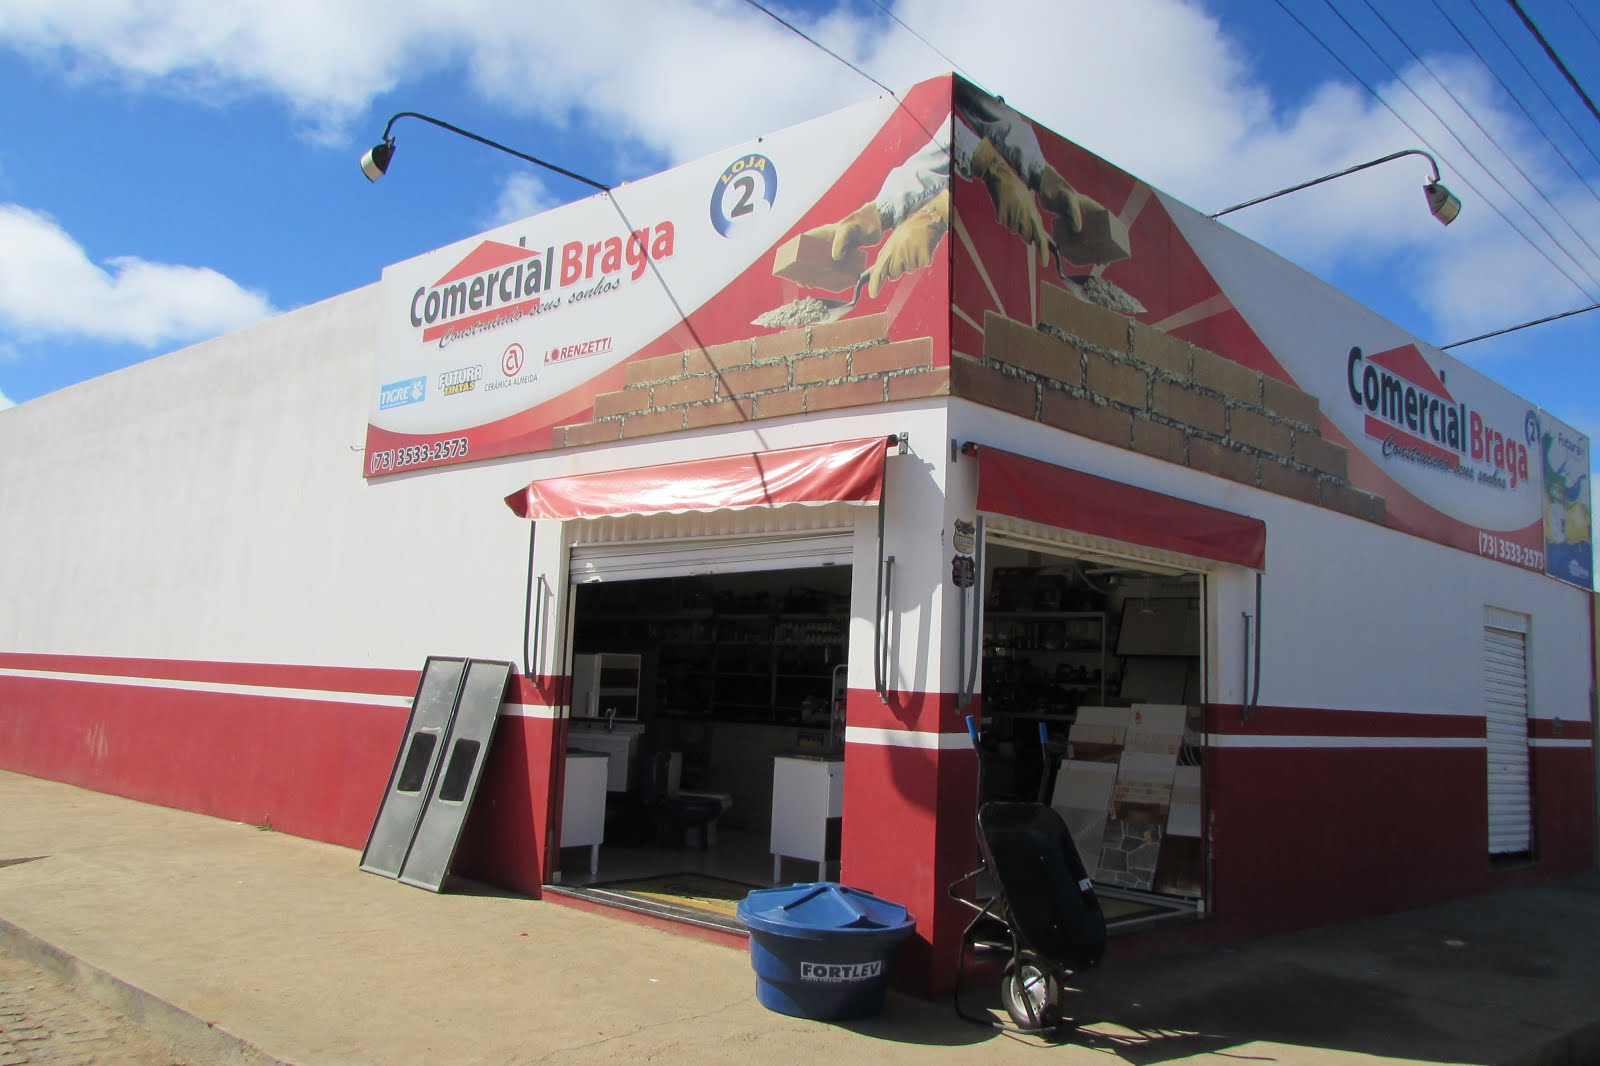 Comercial Braga Loja 2